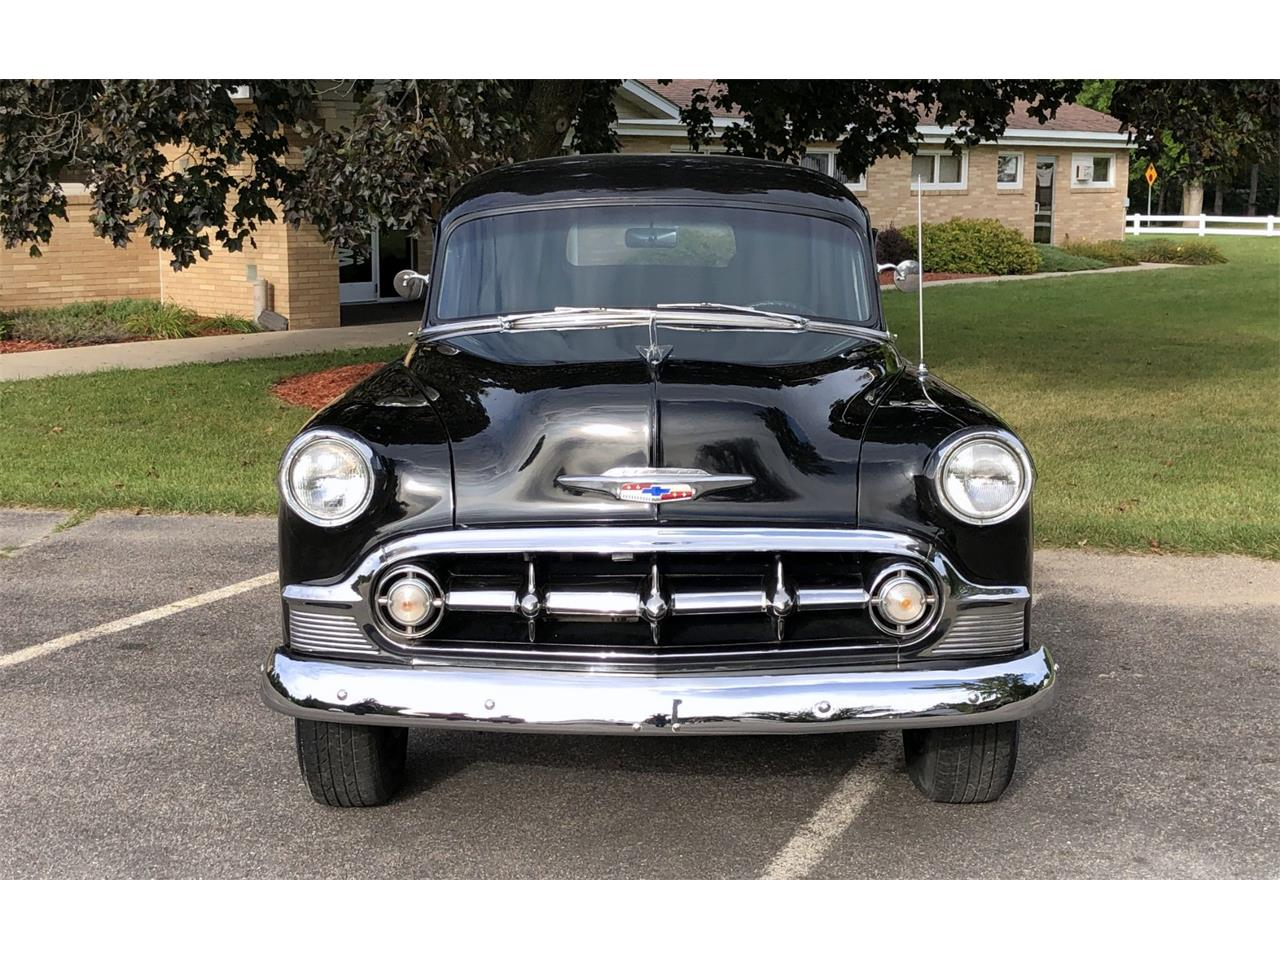 1953 Chevrolet Sedan Delivery (CC-1414684) for sale in Maple Lake, Minnesota